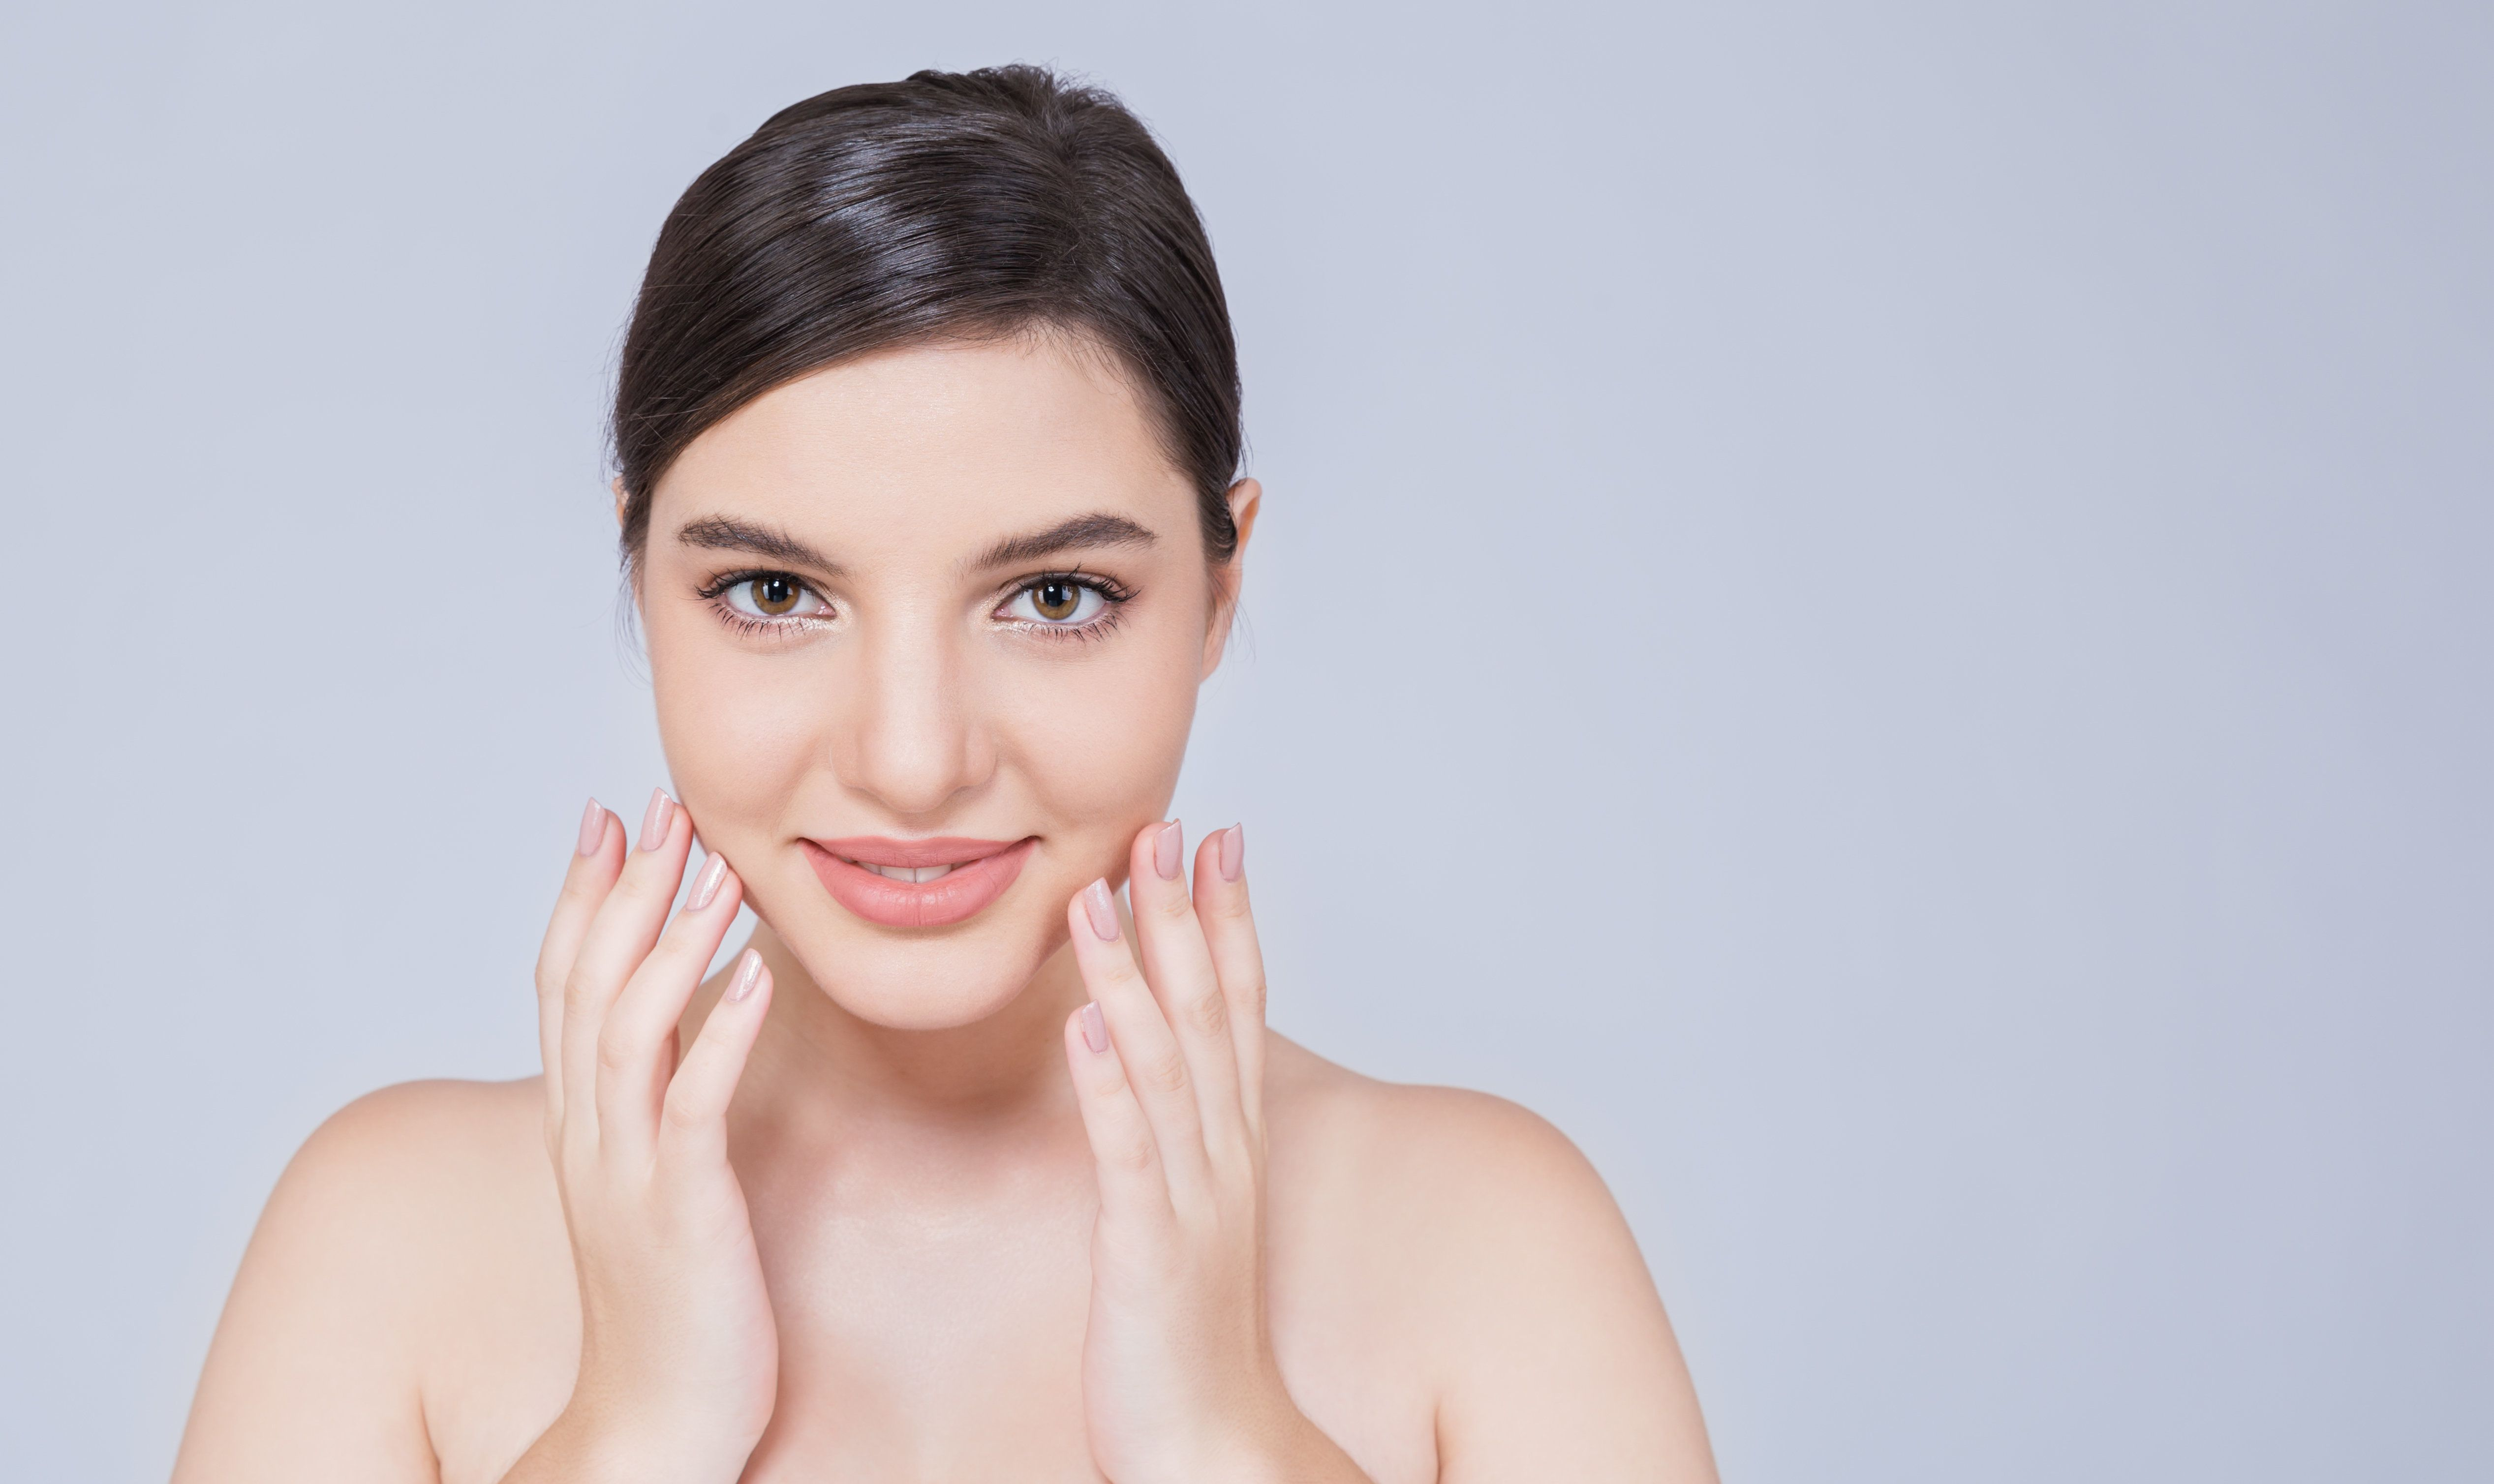 Four Acne Skincare Adverts Banned After Making Medicinal Claims For